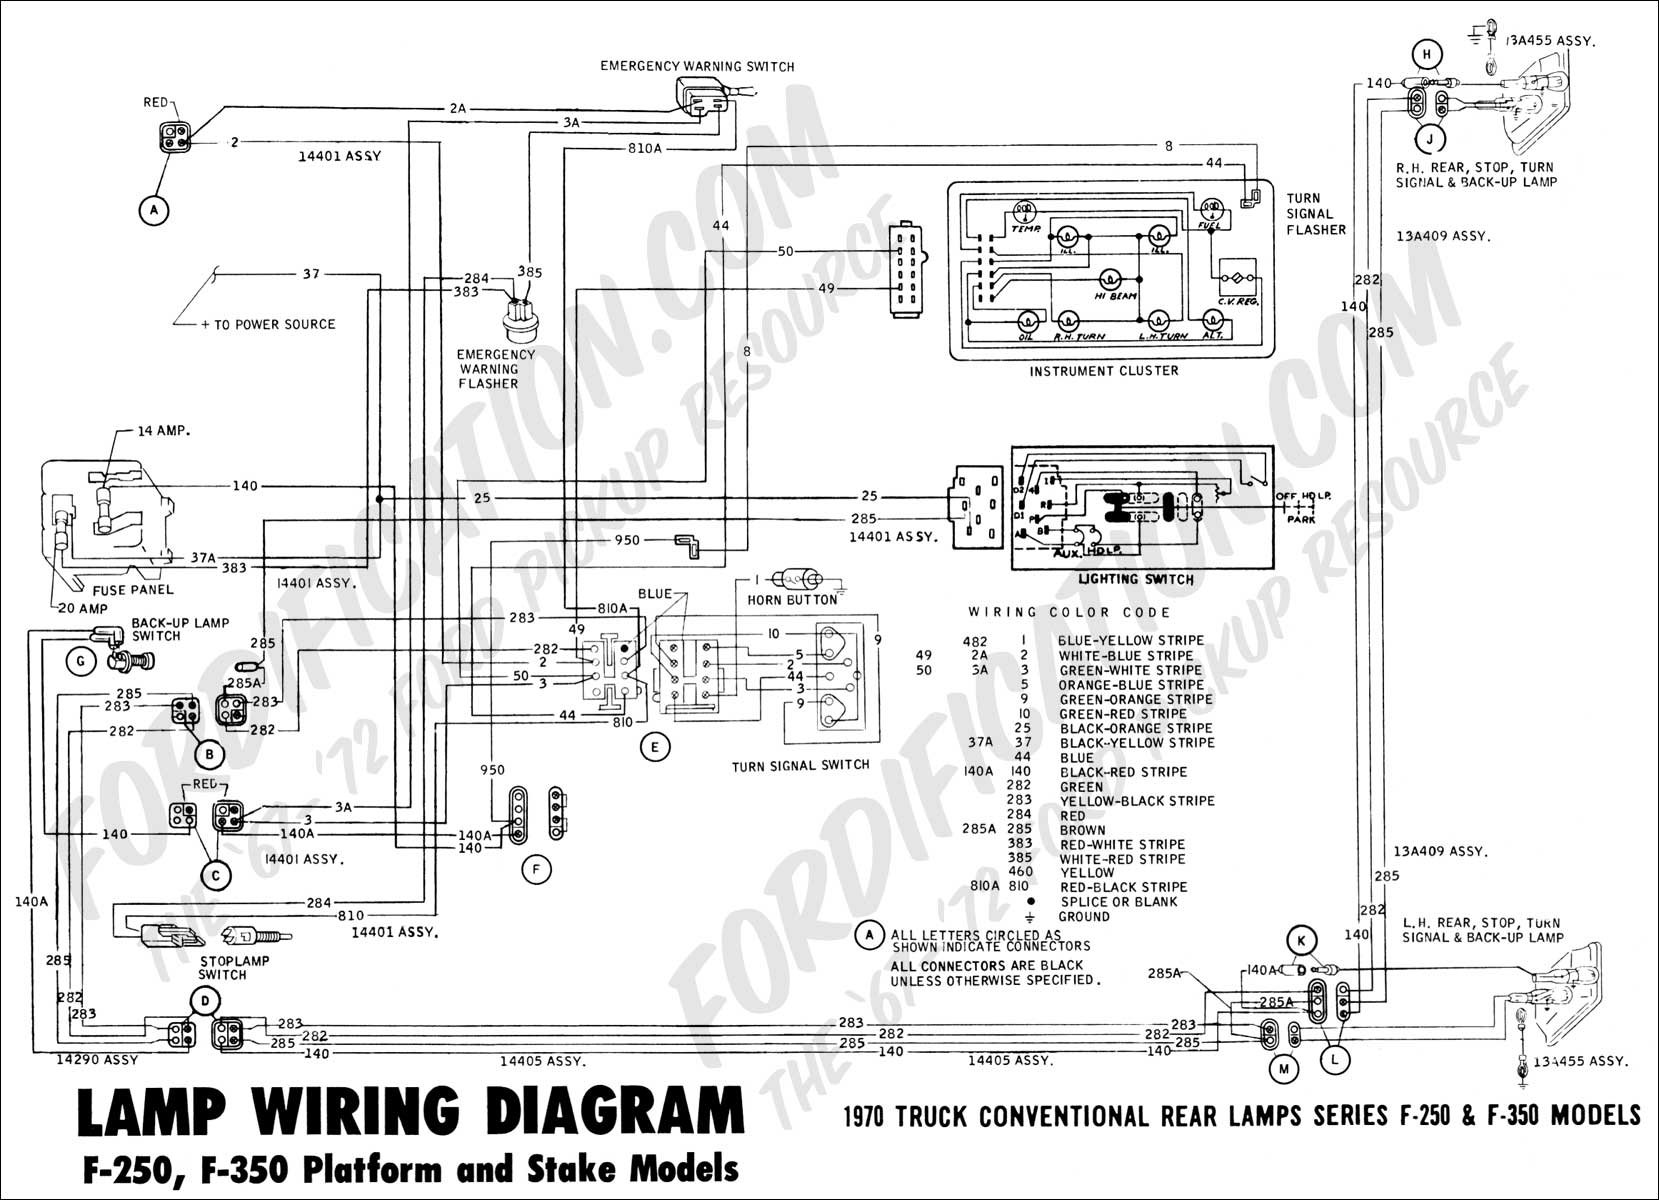 2005 Ford Ranger Trailer Wiring Diagram Archive Of Automotive Kenworth Harness 1994 F250 4x4 Schematics Rh Thyl Co Uk